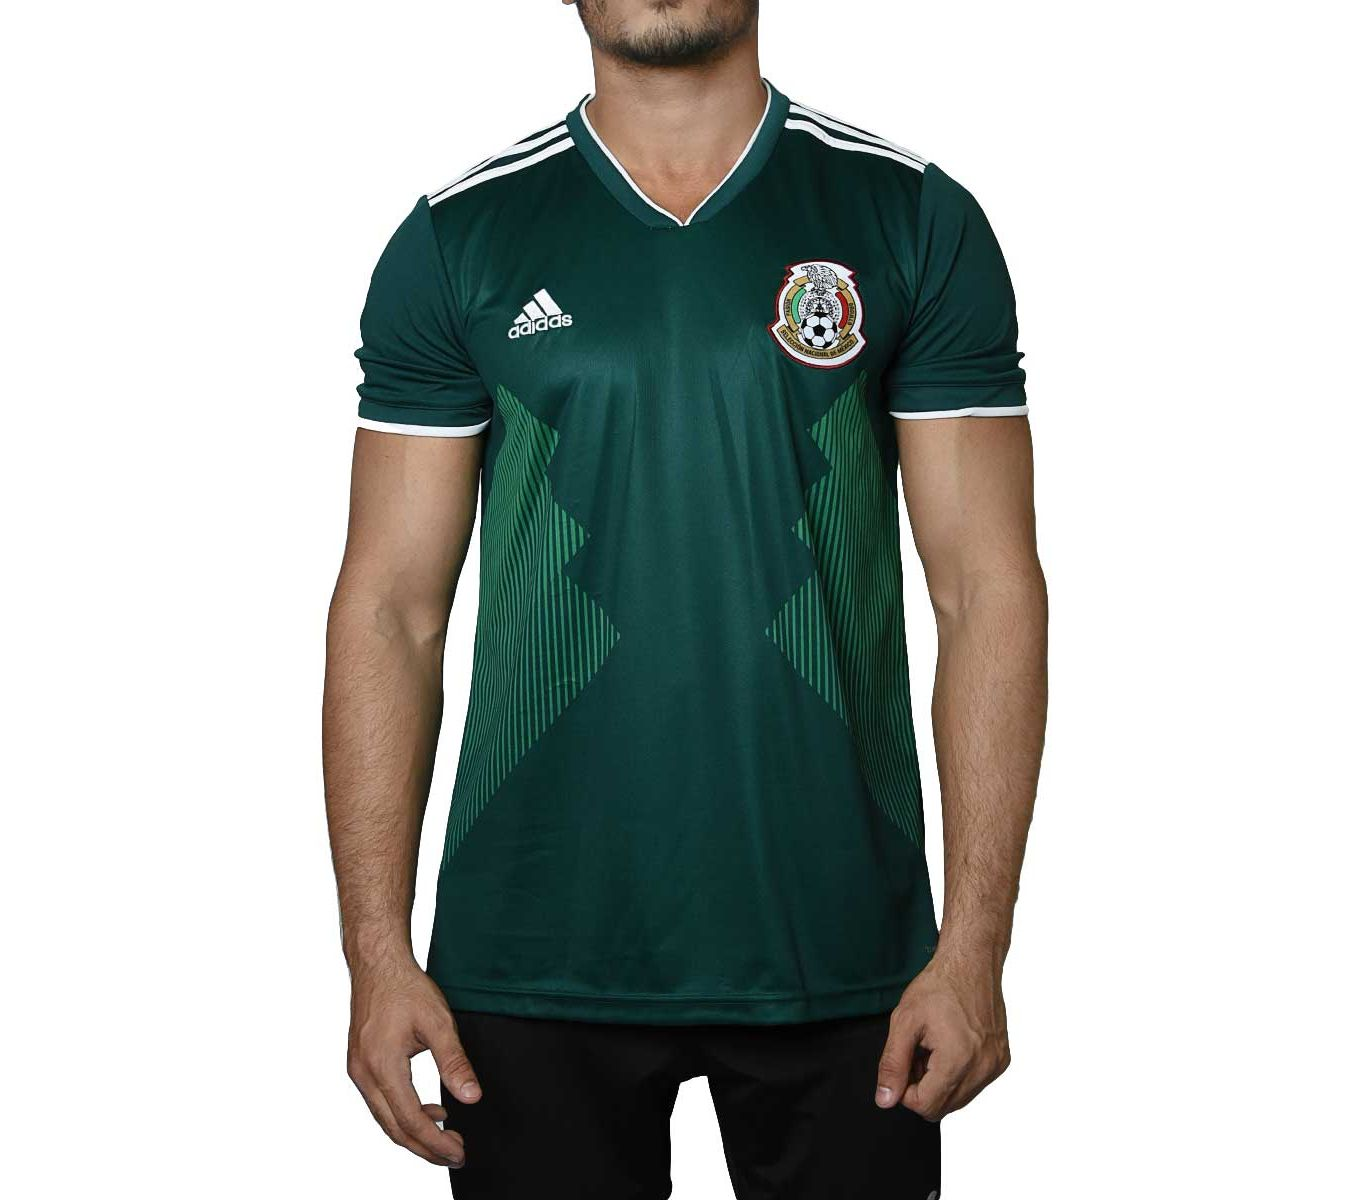 size 40 d5779 067e5 Mexico - Fan Version - Half Sleeves - Home Jersey - World Cup 2018 By  Fasilite